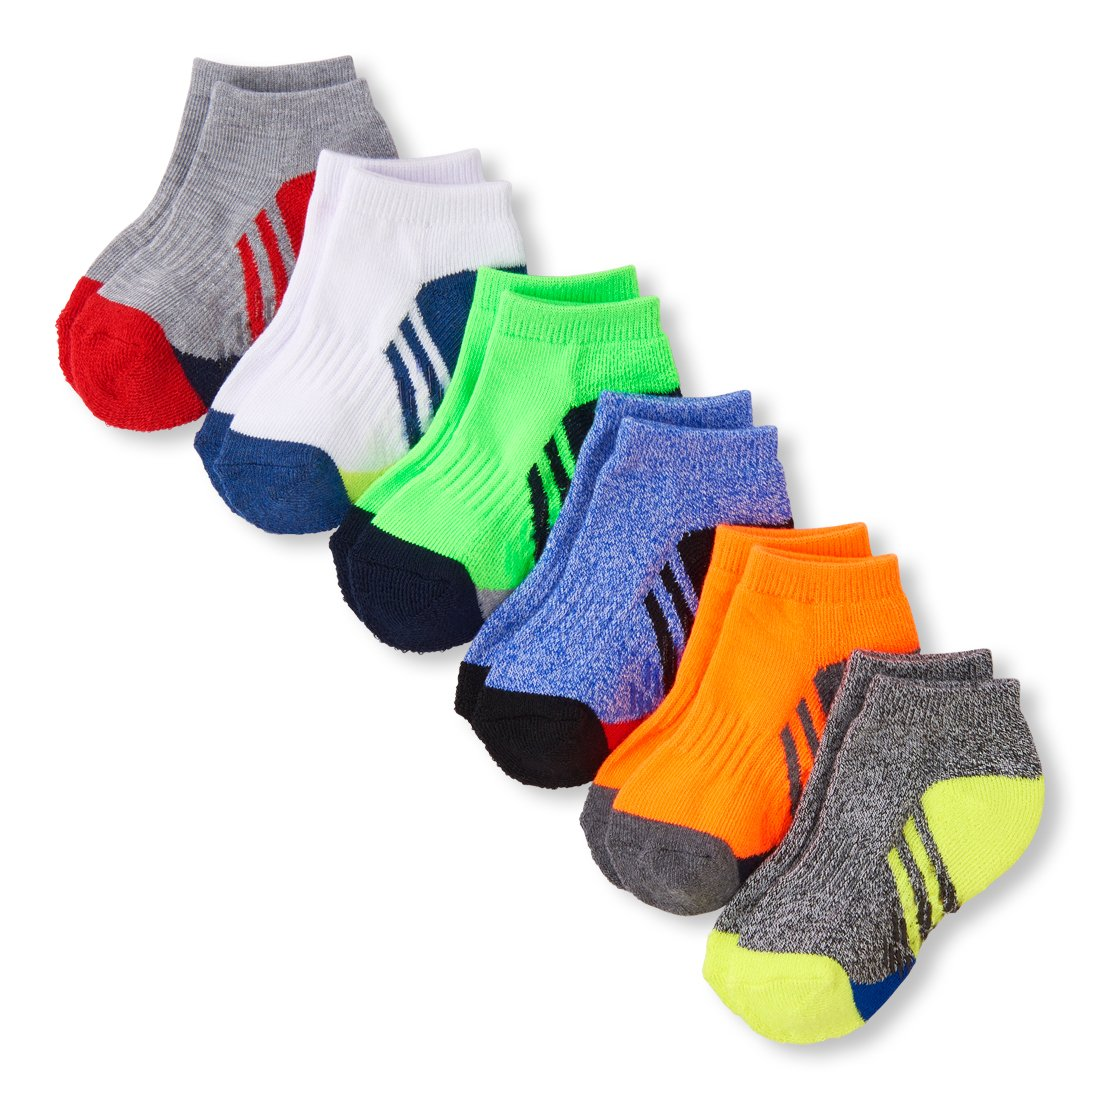 The Children's Place Baby Boys 6 Pack Ankle Sport Socks, Multi CLR, 12-24MONTH